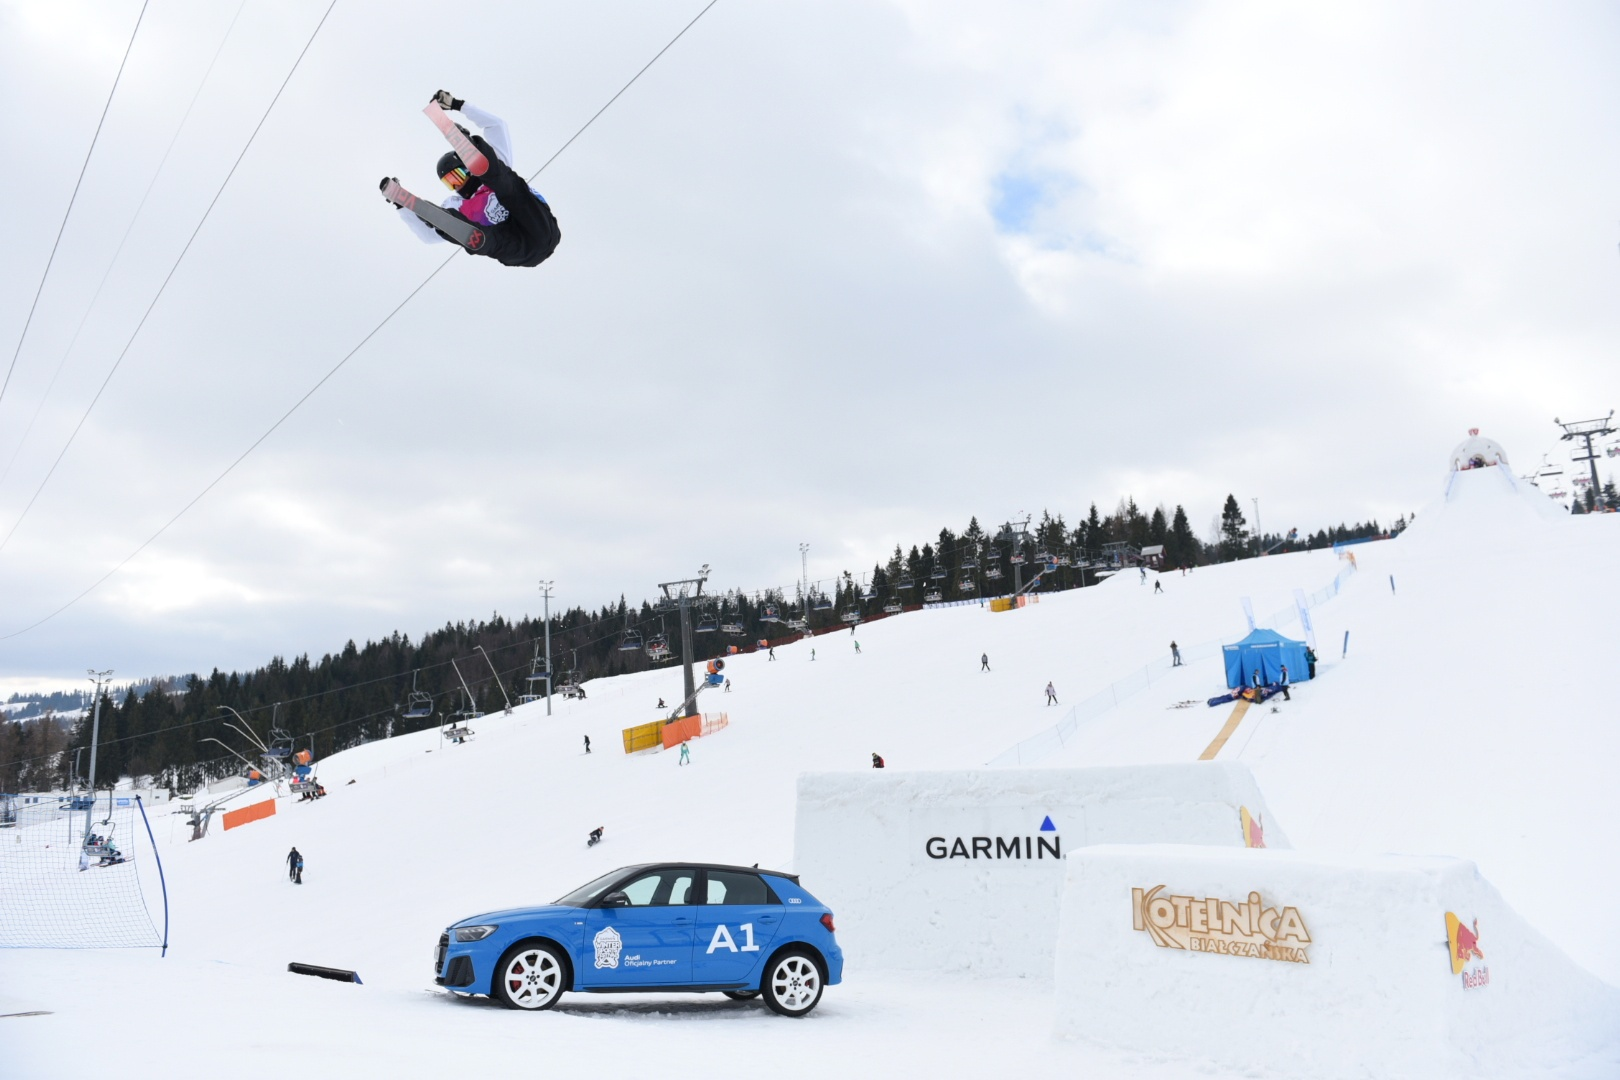 Garmin Winter Sports Festival 2019 Ski Fot Tomek Gola